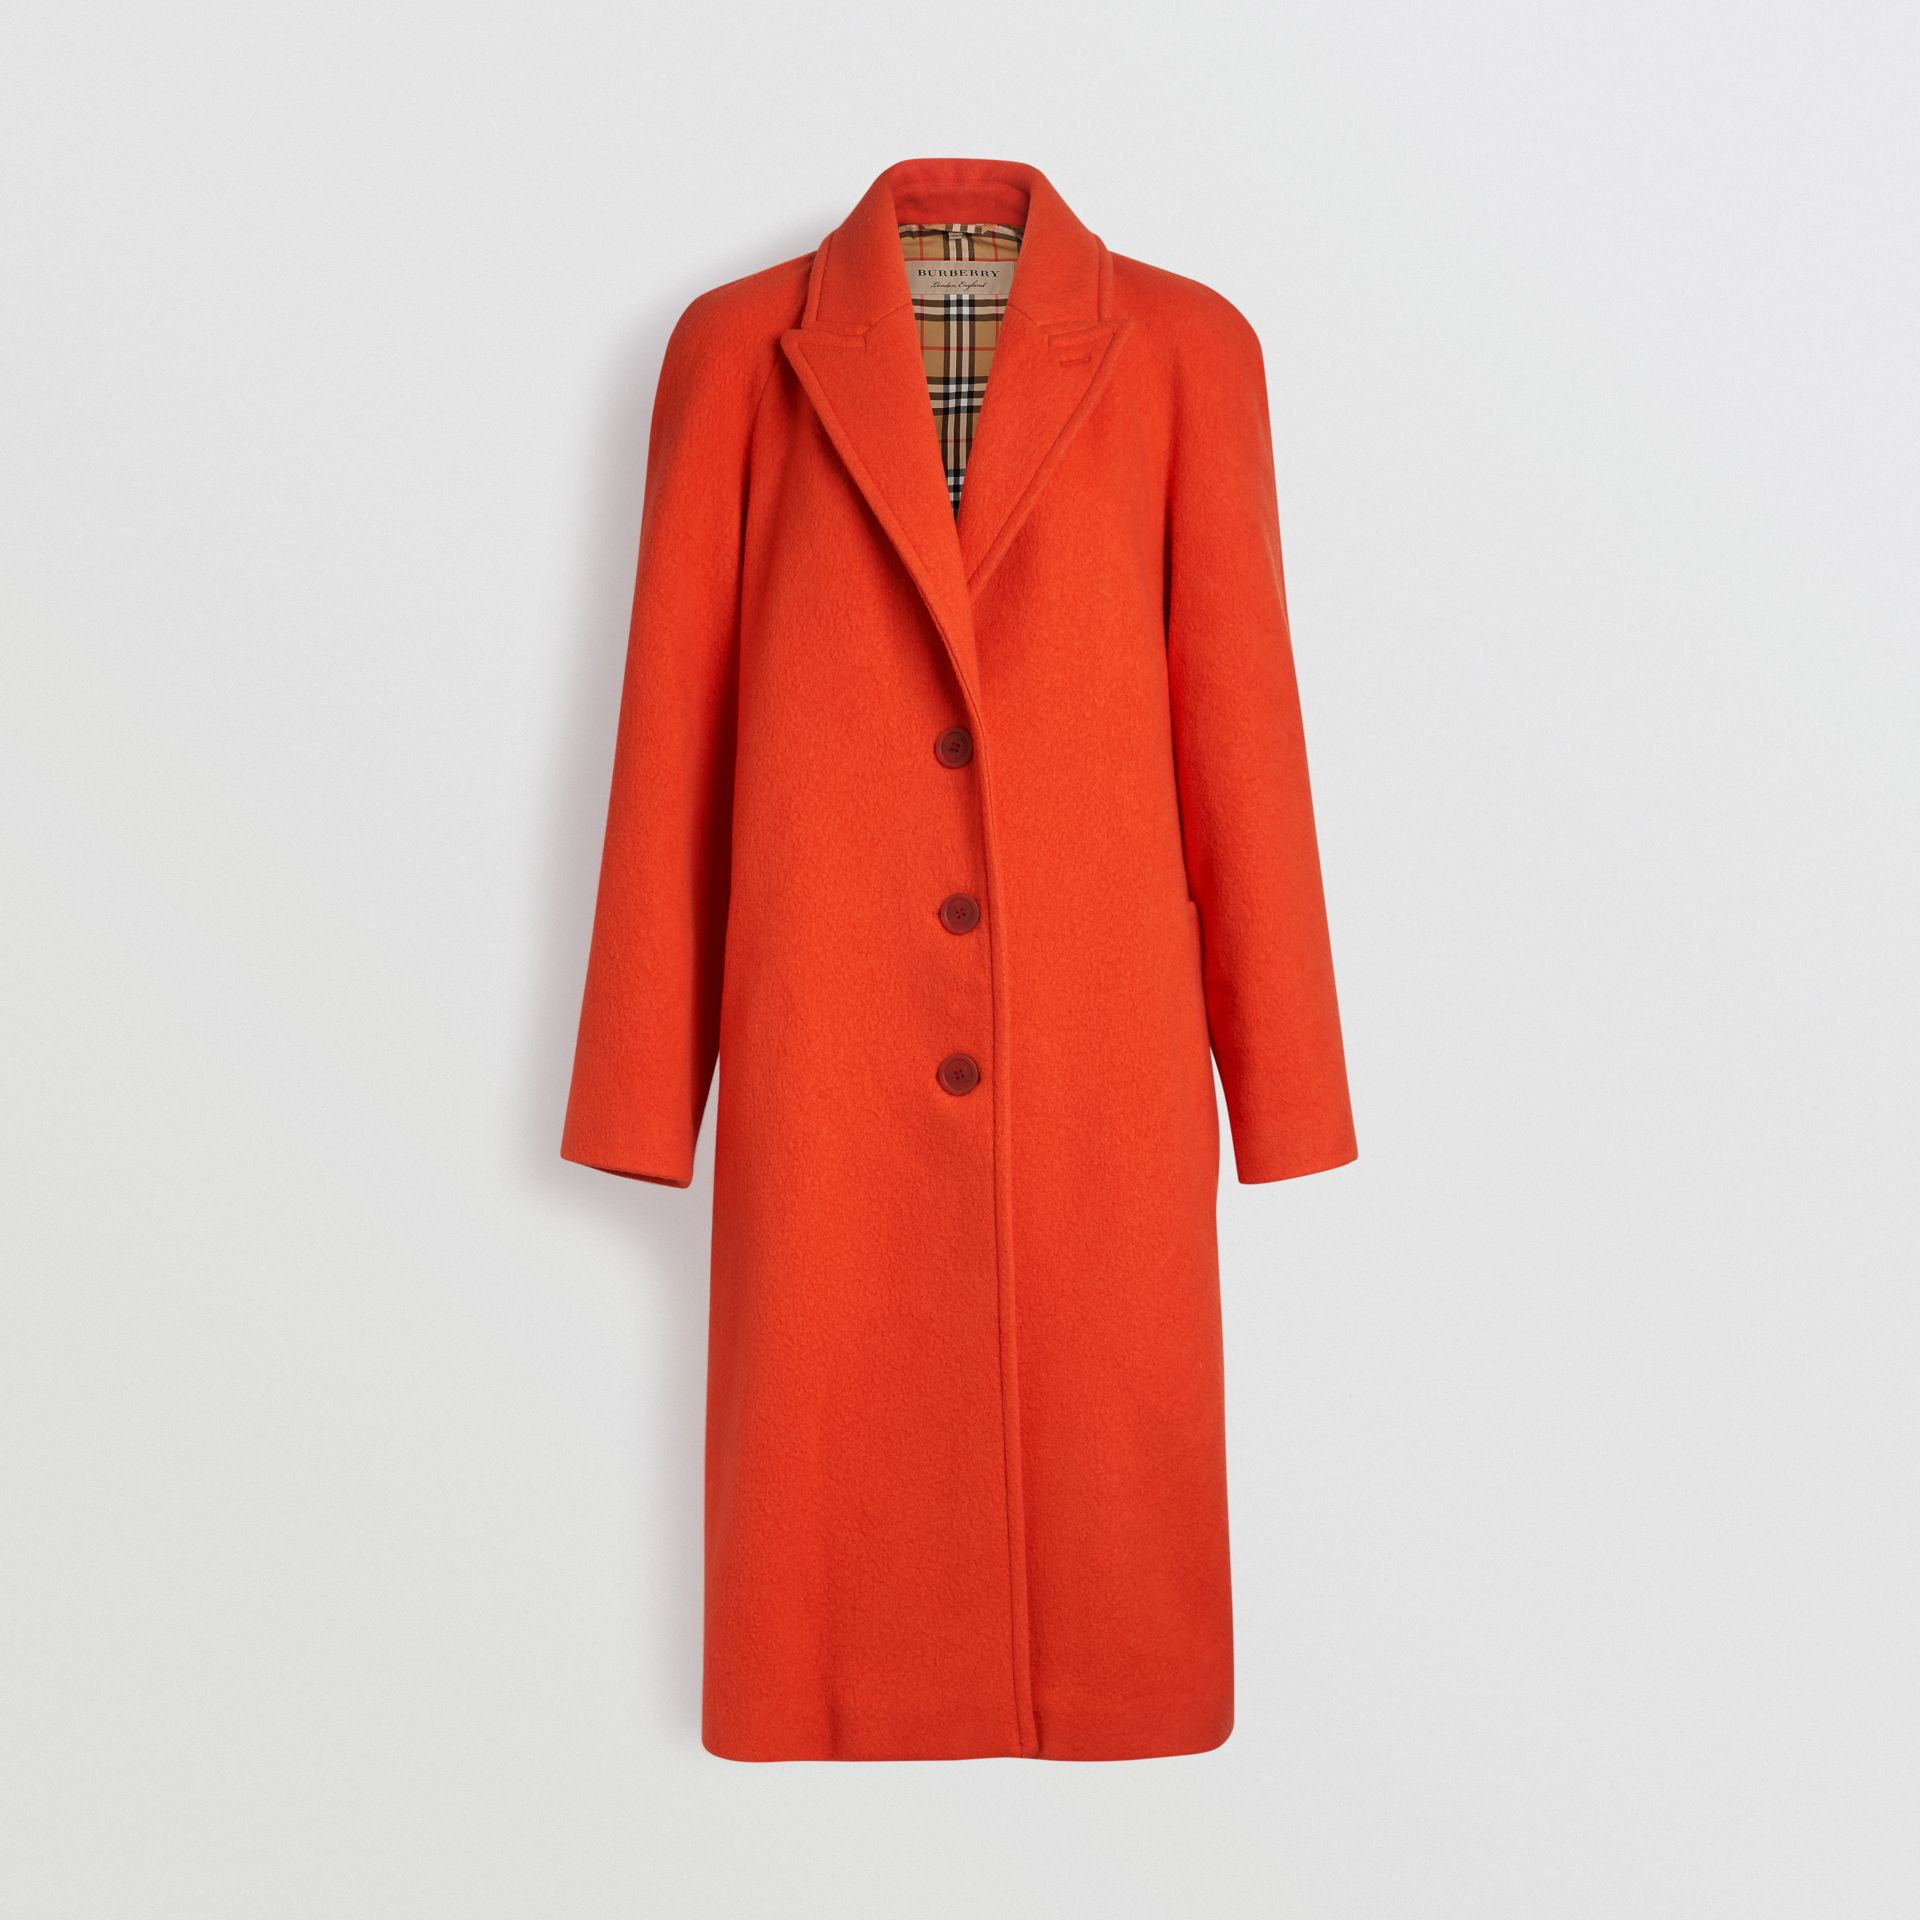 Wool Blend Tailored Coat in Bright Red - Women | Burberry Singapore - gallery image 3